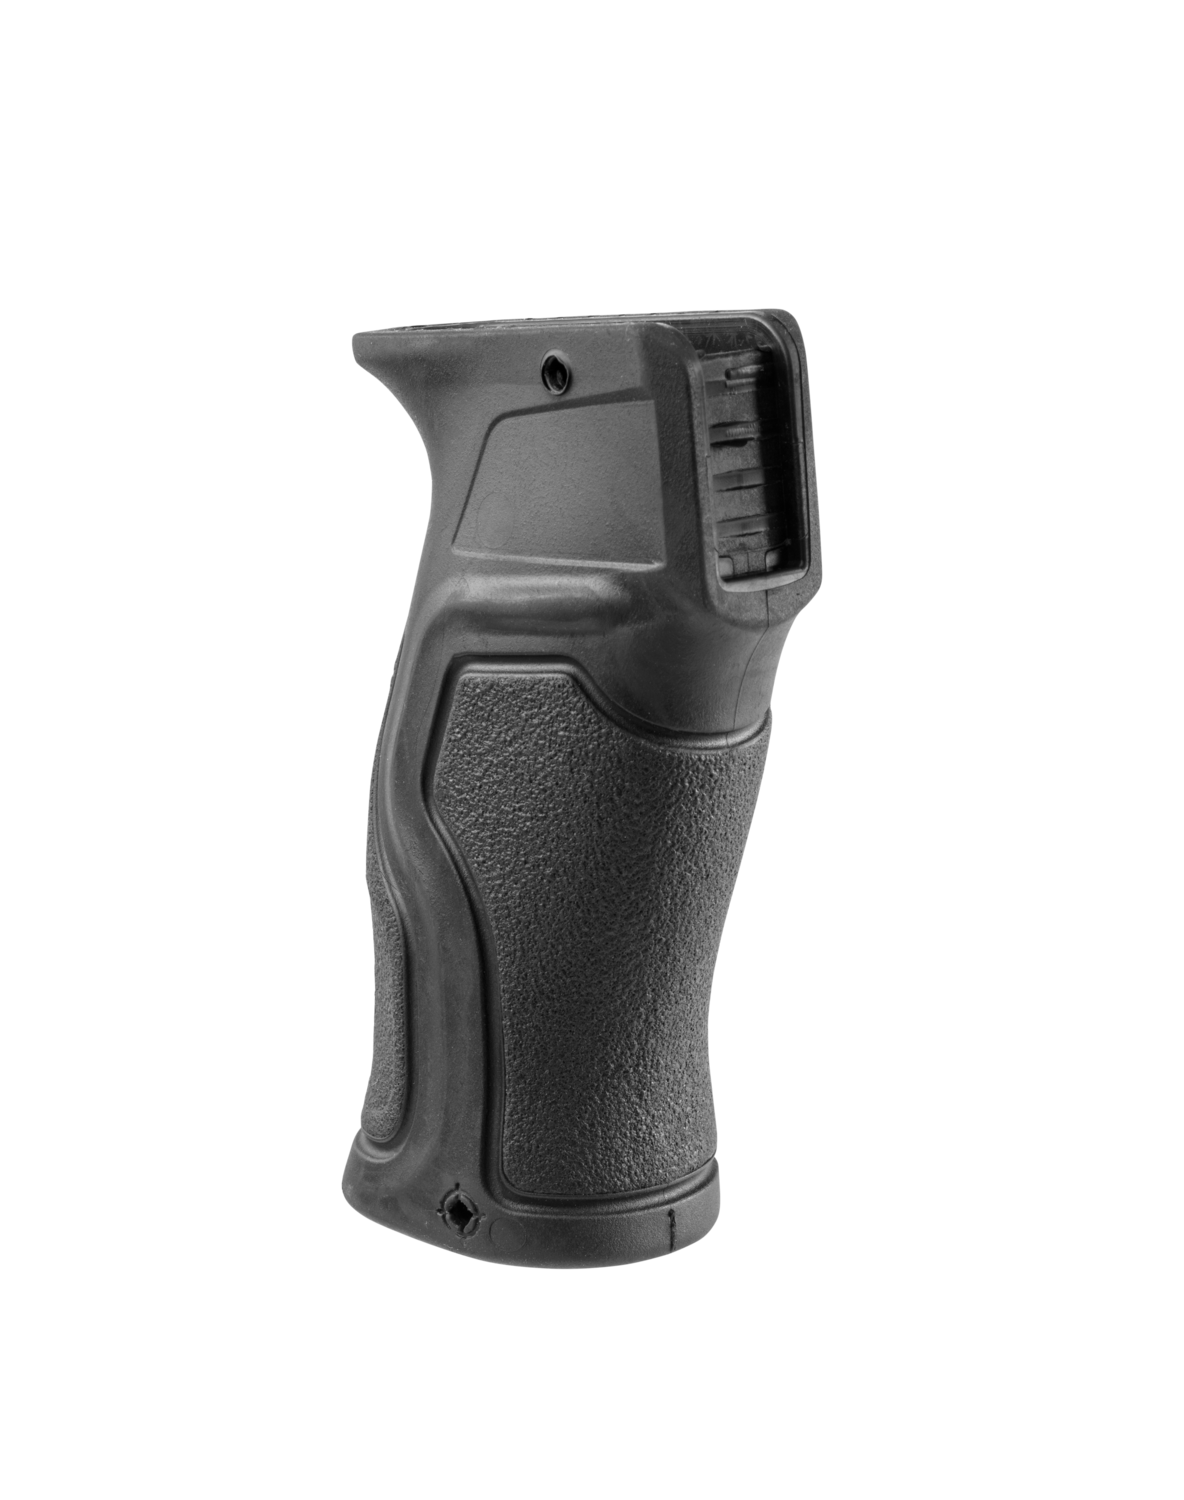 GradusAK - Reduced Angle Pistol Grip for AK/Galil